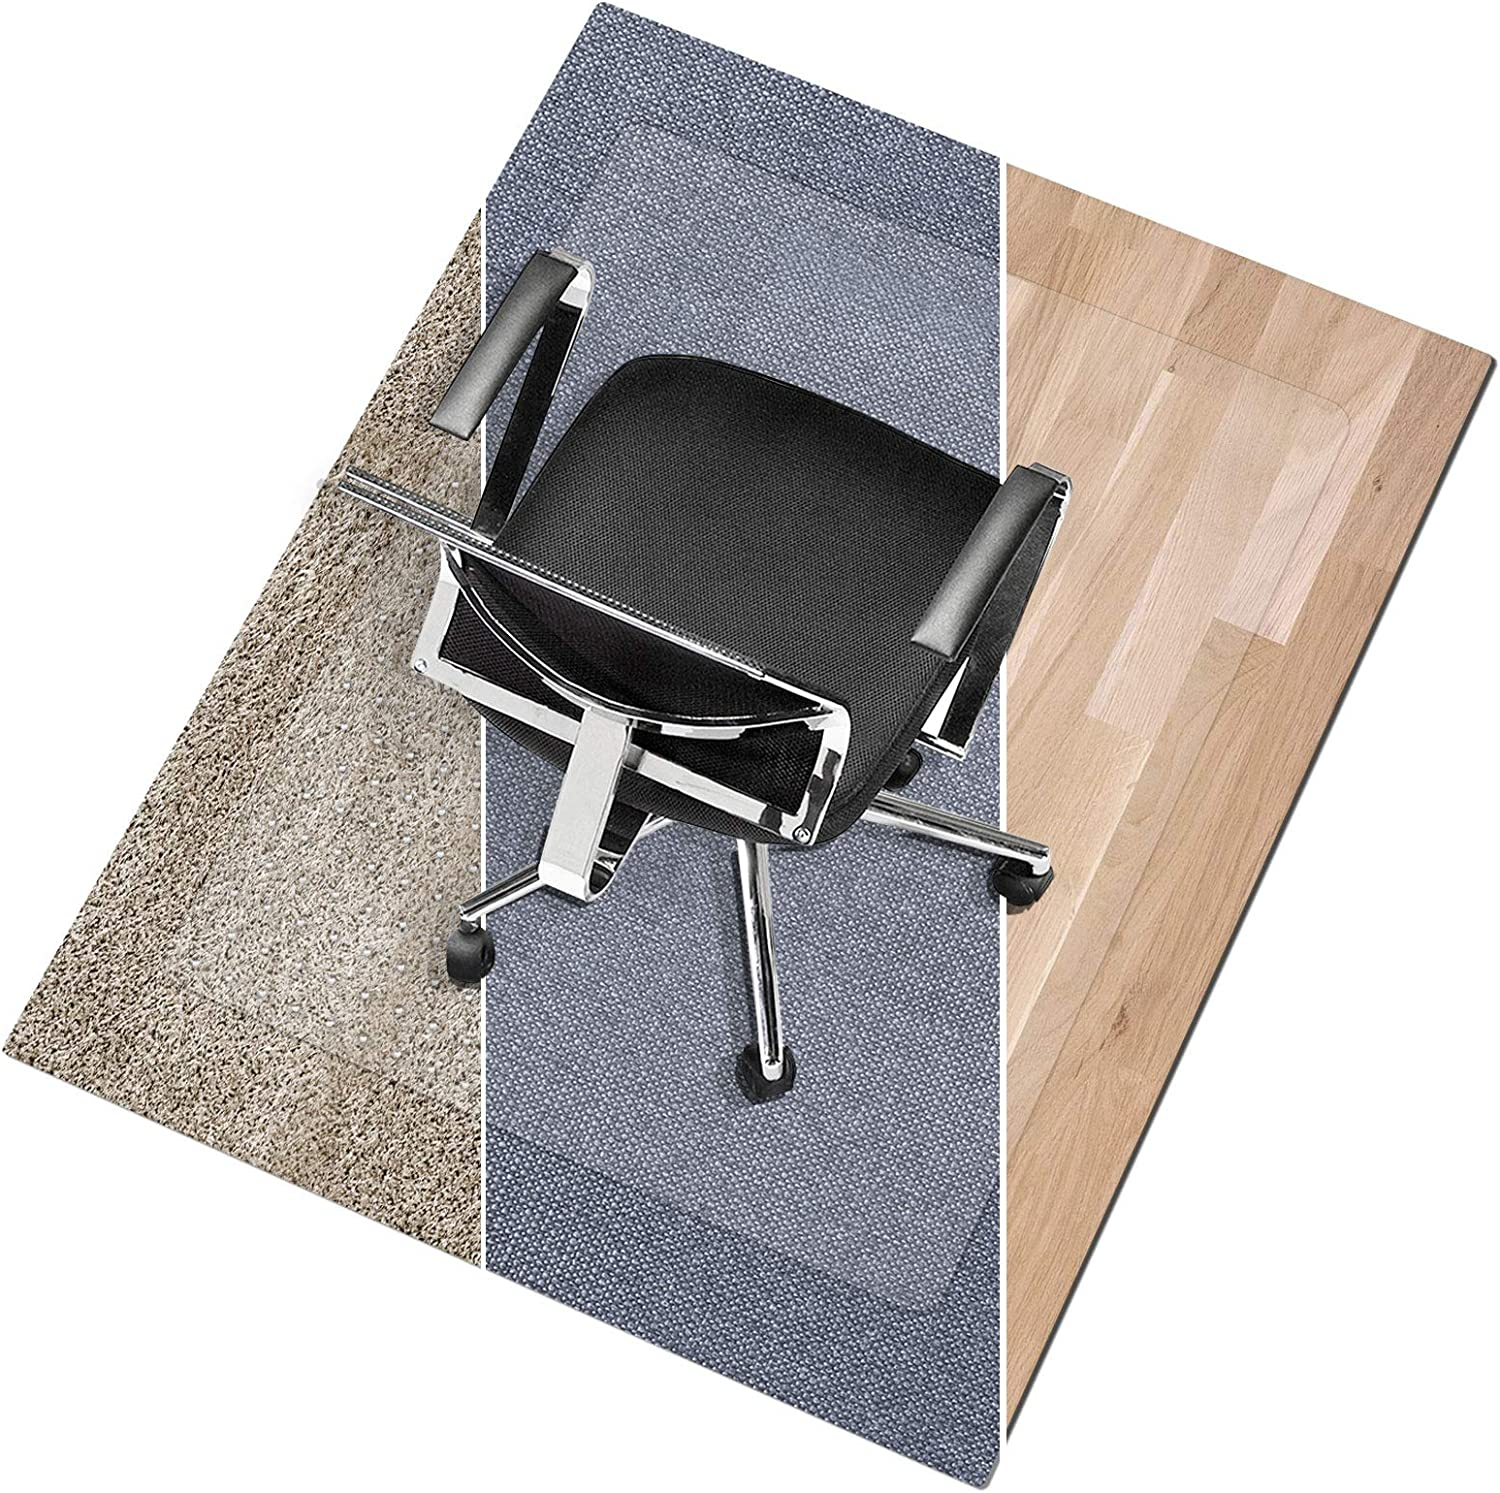 POHOVE Chair Mat For Carpet Floors Protection Office Chair Computer Chair Multiple Transparent High Impact Strength